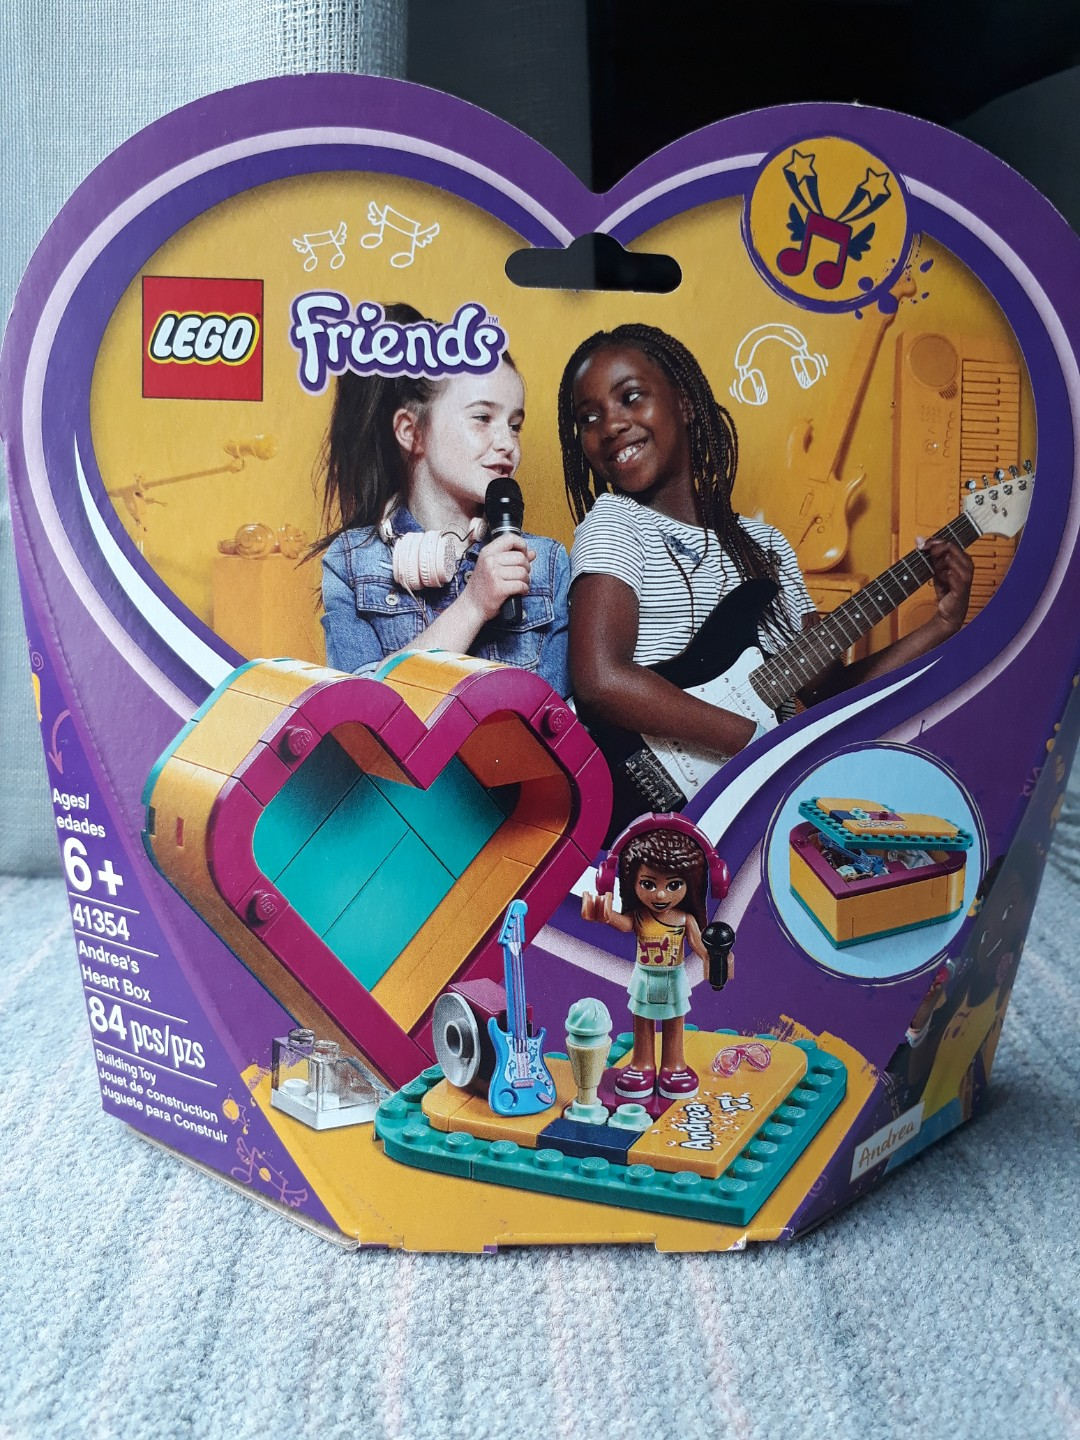 Lego Friends Andreas Heart Box Toys Games Bricks Figurines On